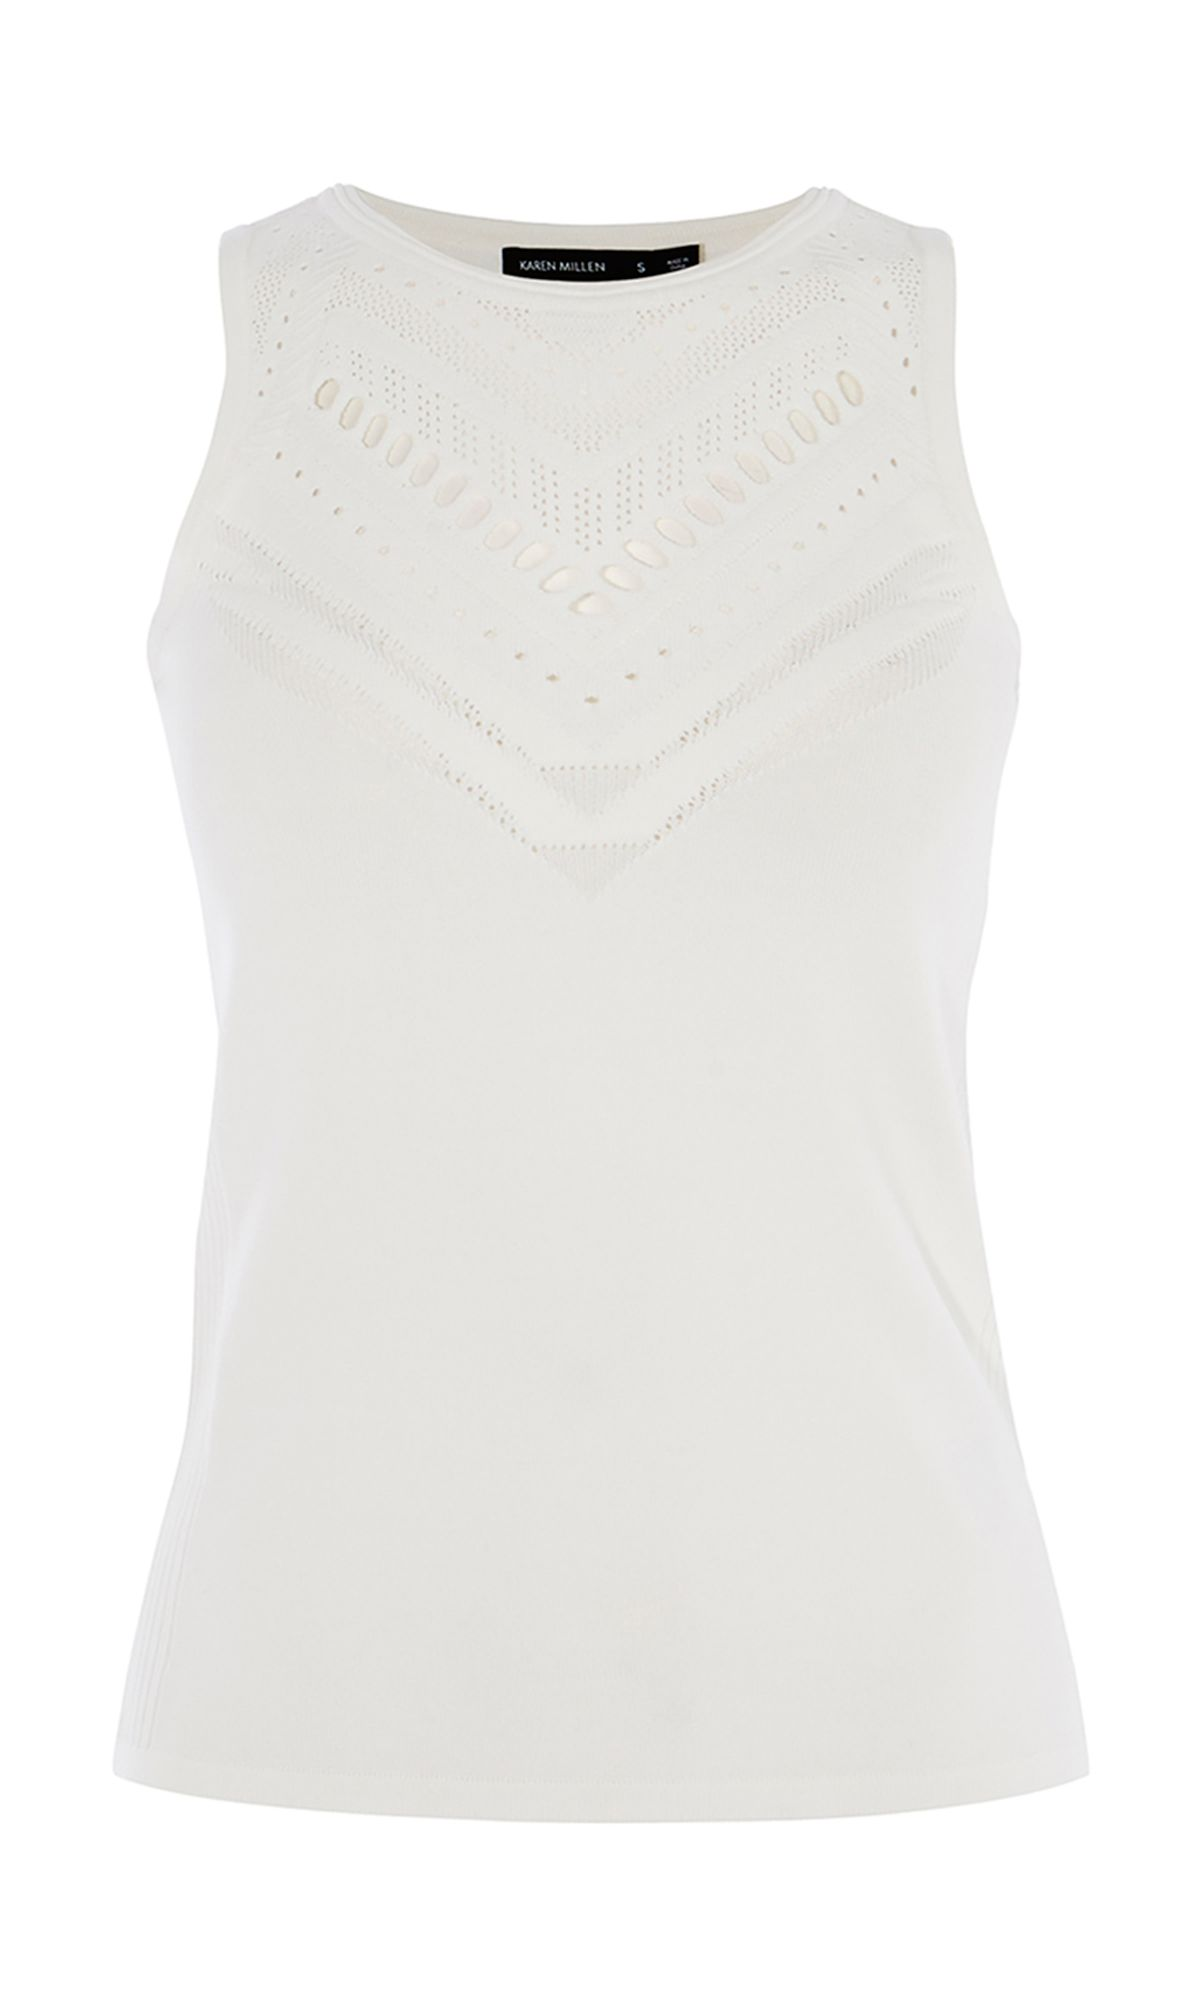 Karen Millen Open Knit Top, White